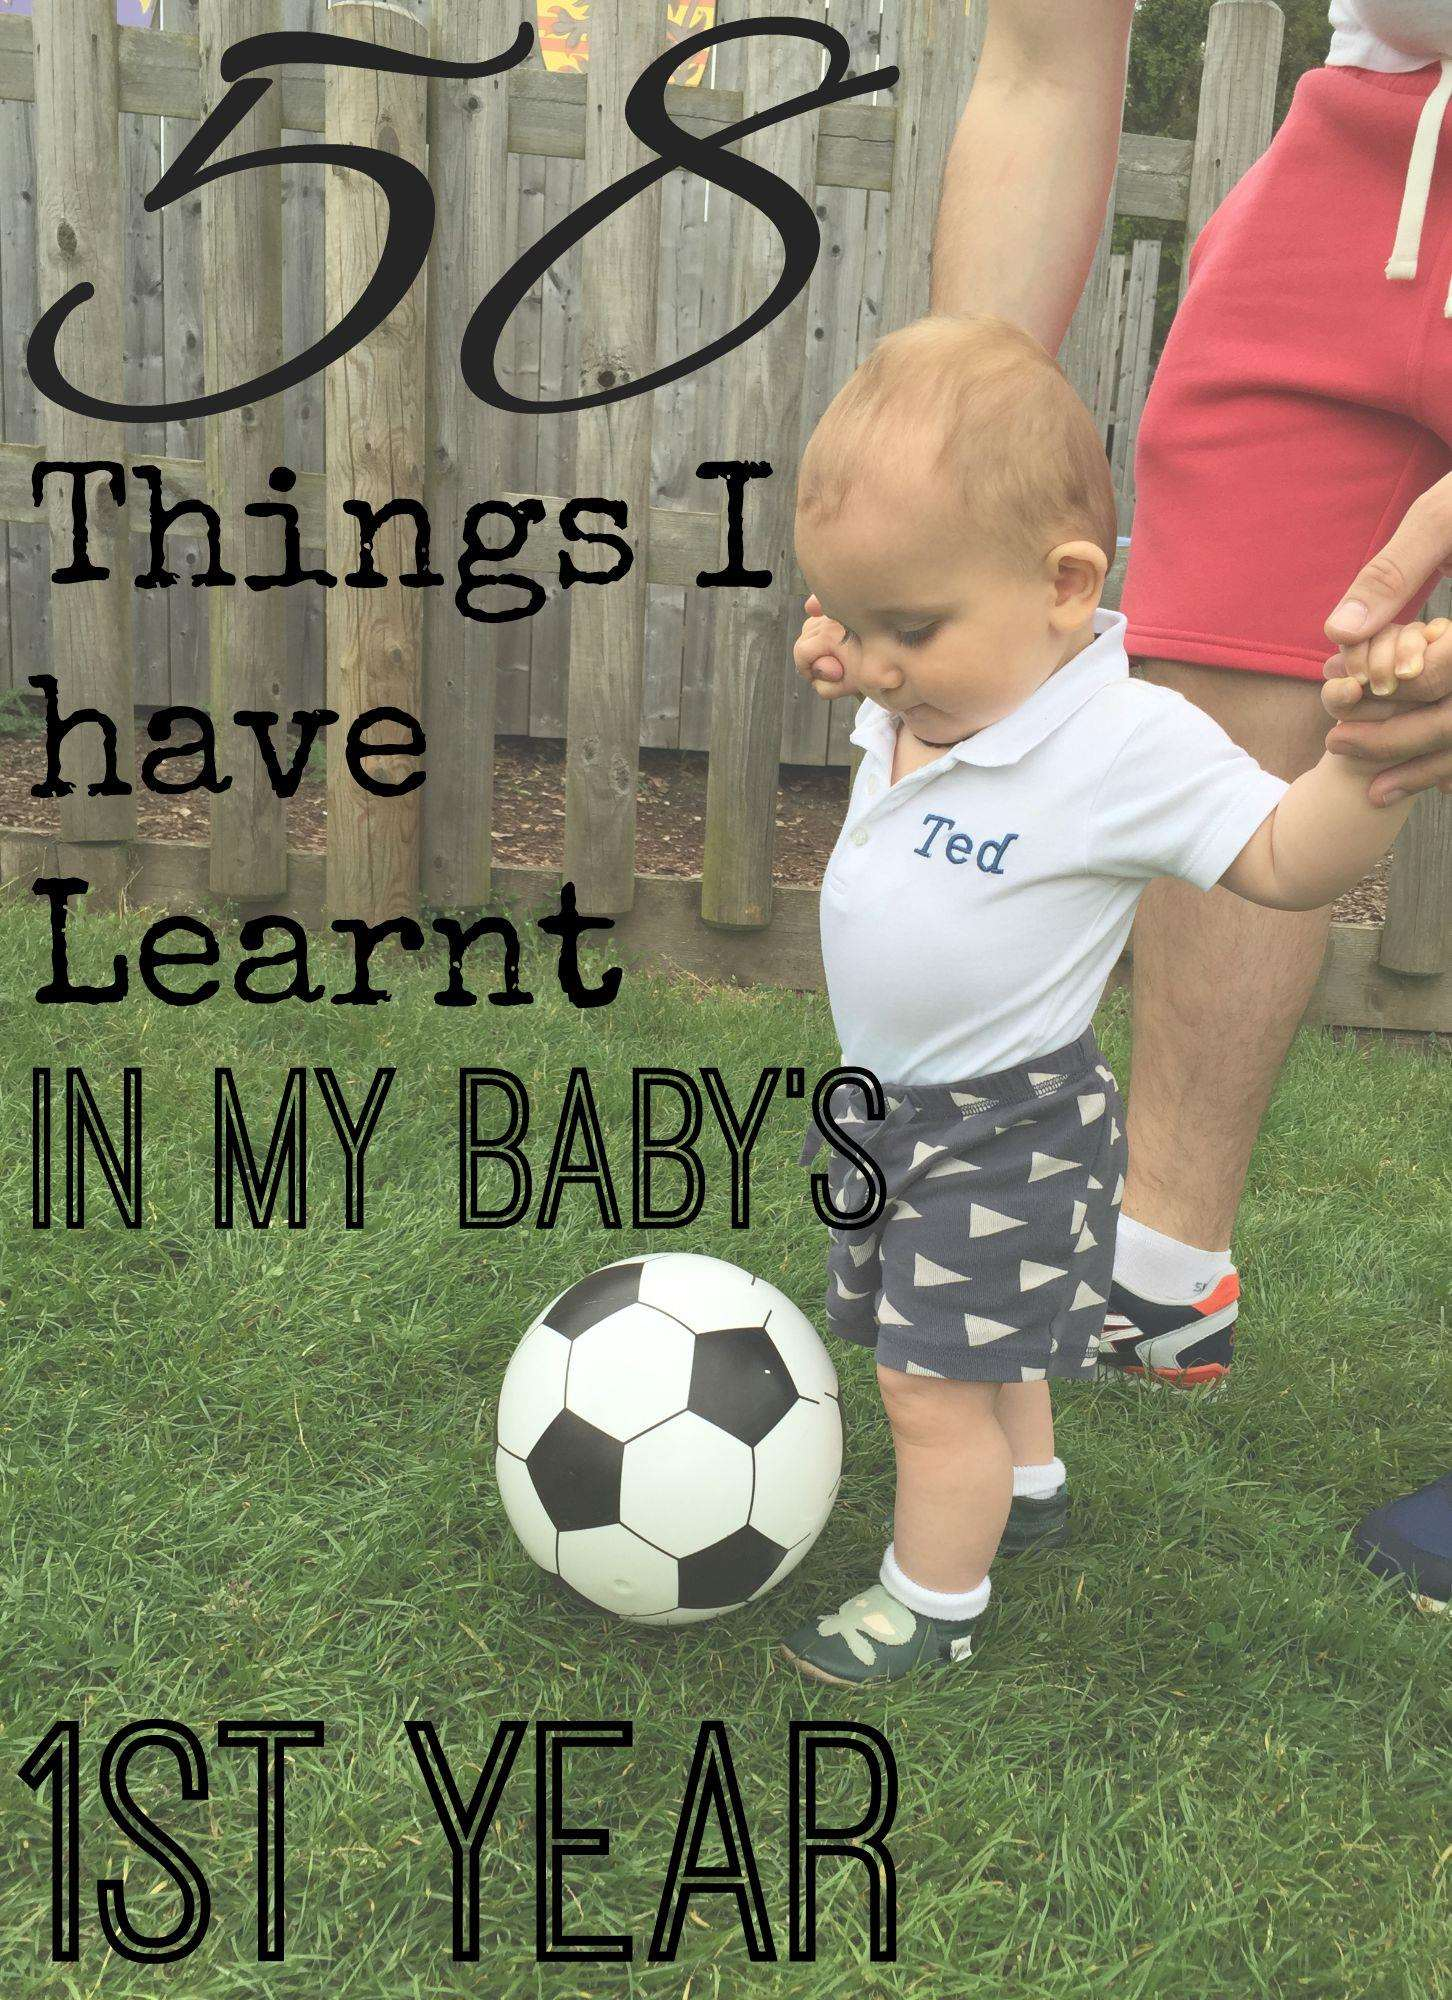 58 Things I have Learnt in my Baby's first Year, Things I have learnt in my baby first year%, new-dad, 0-1%